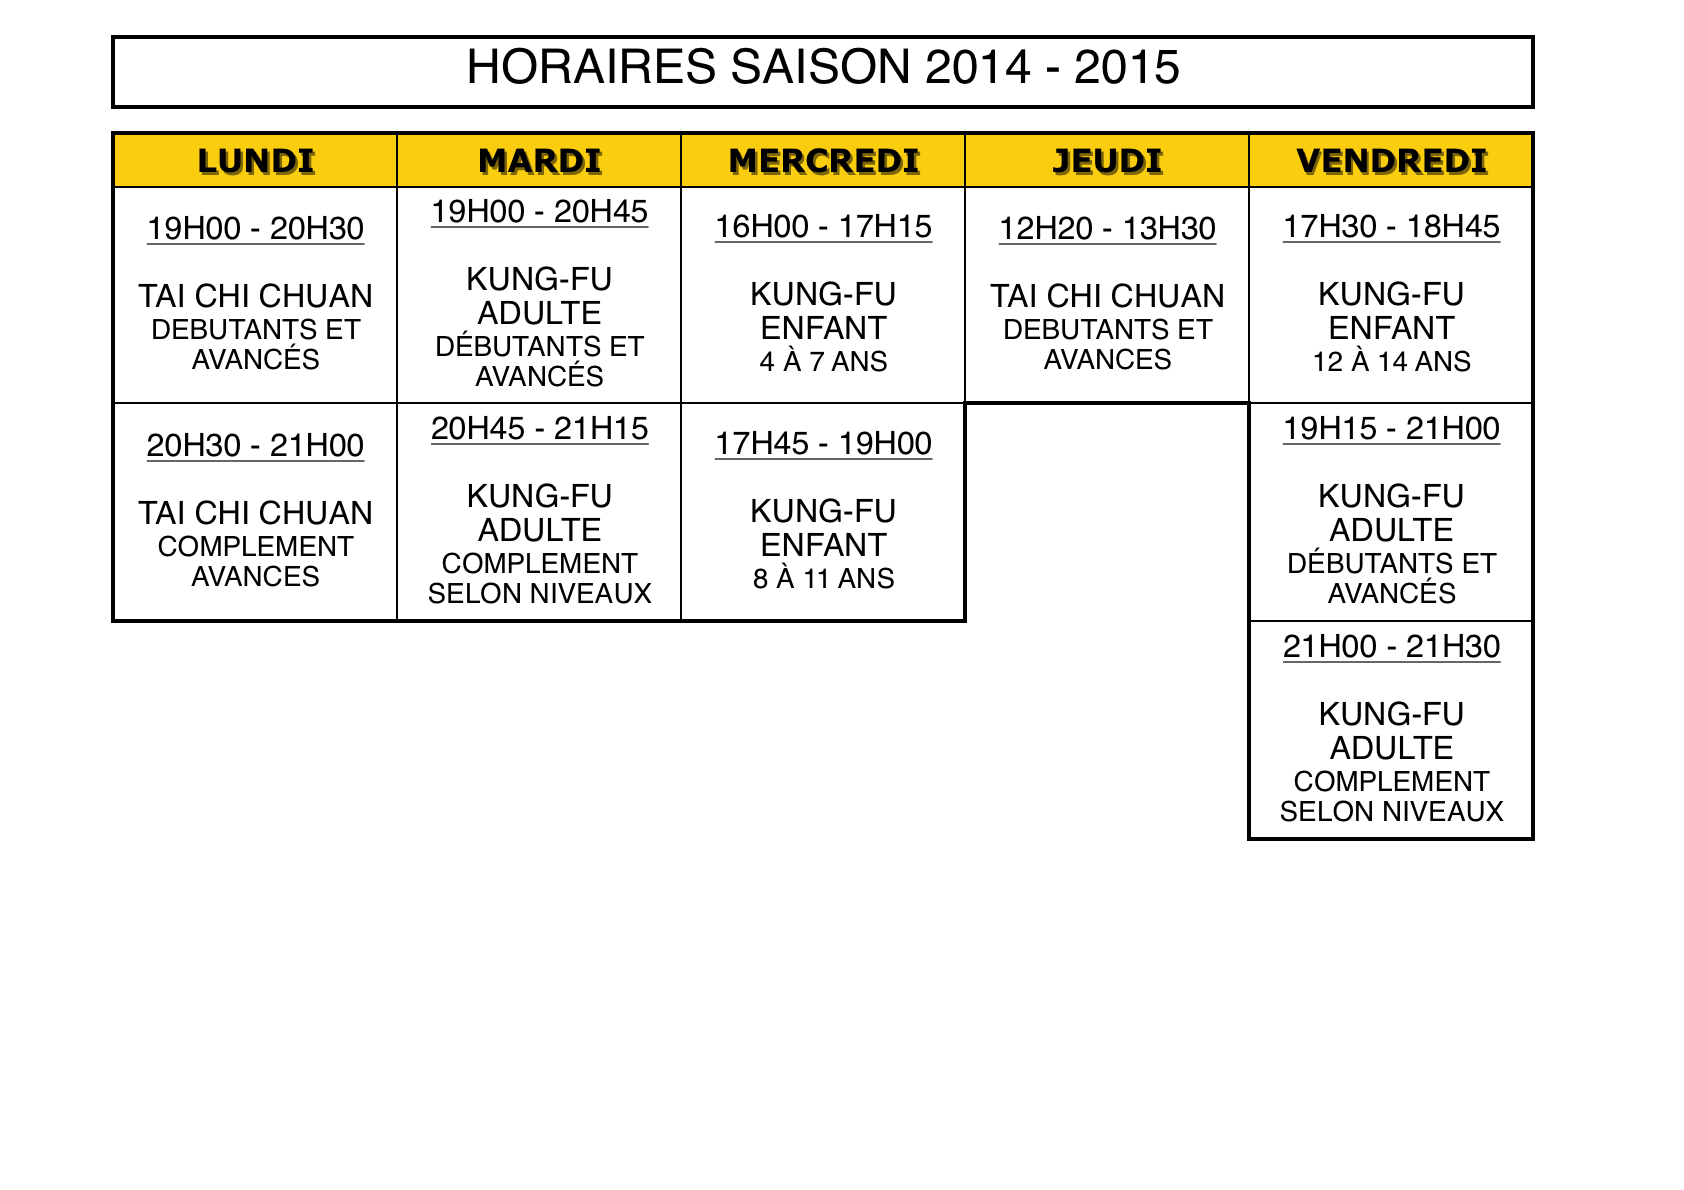 HORAIRES 2014 : 2015